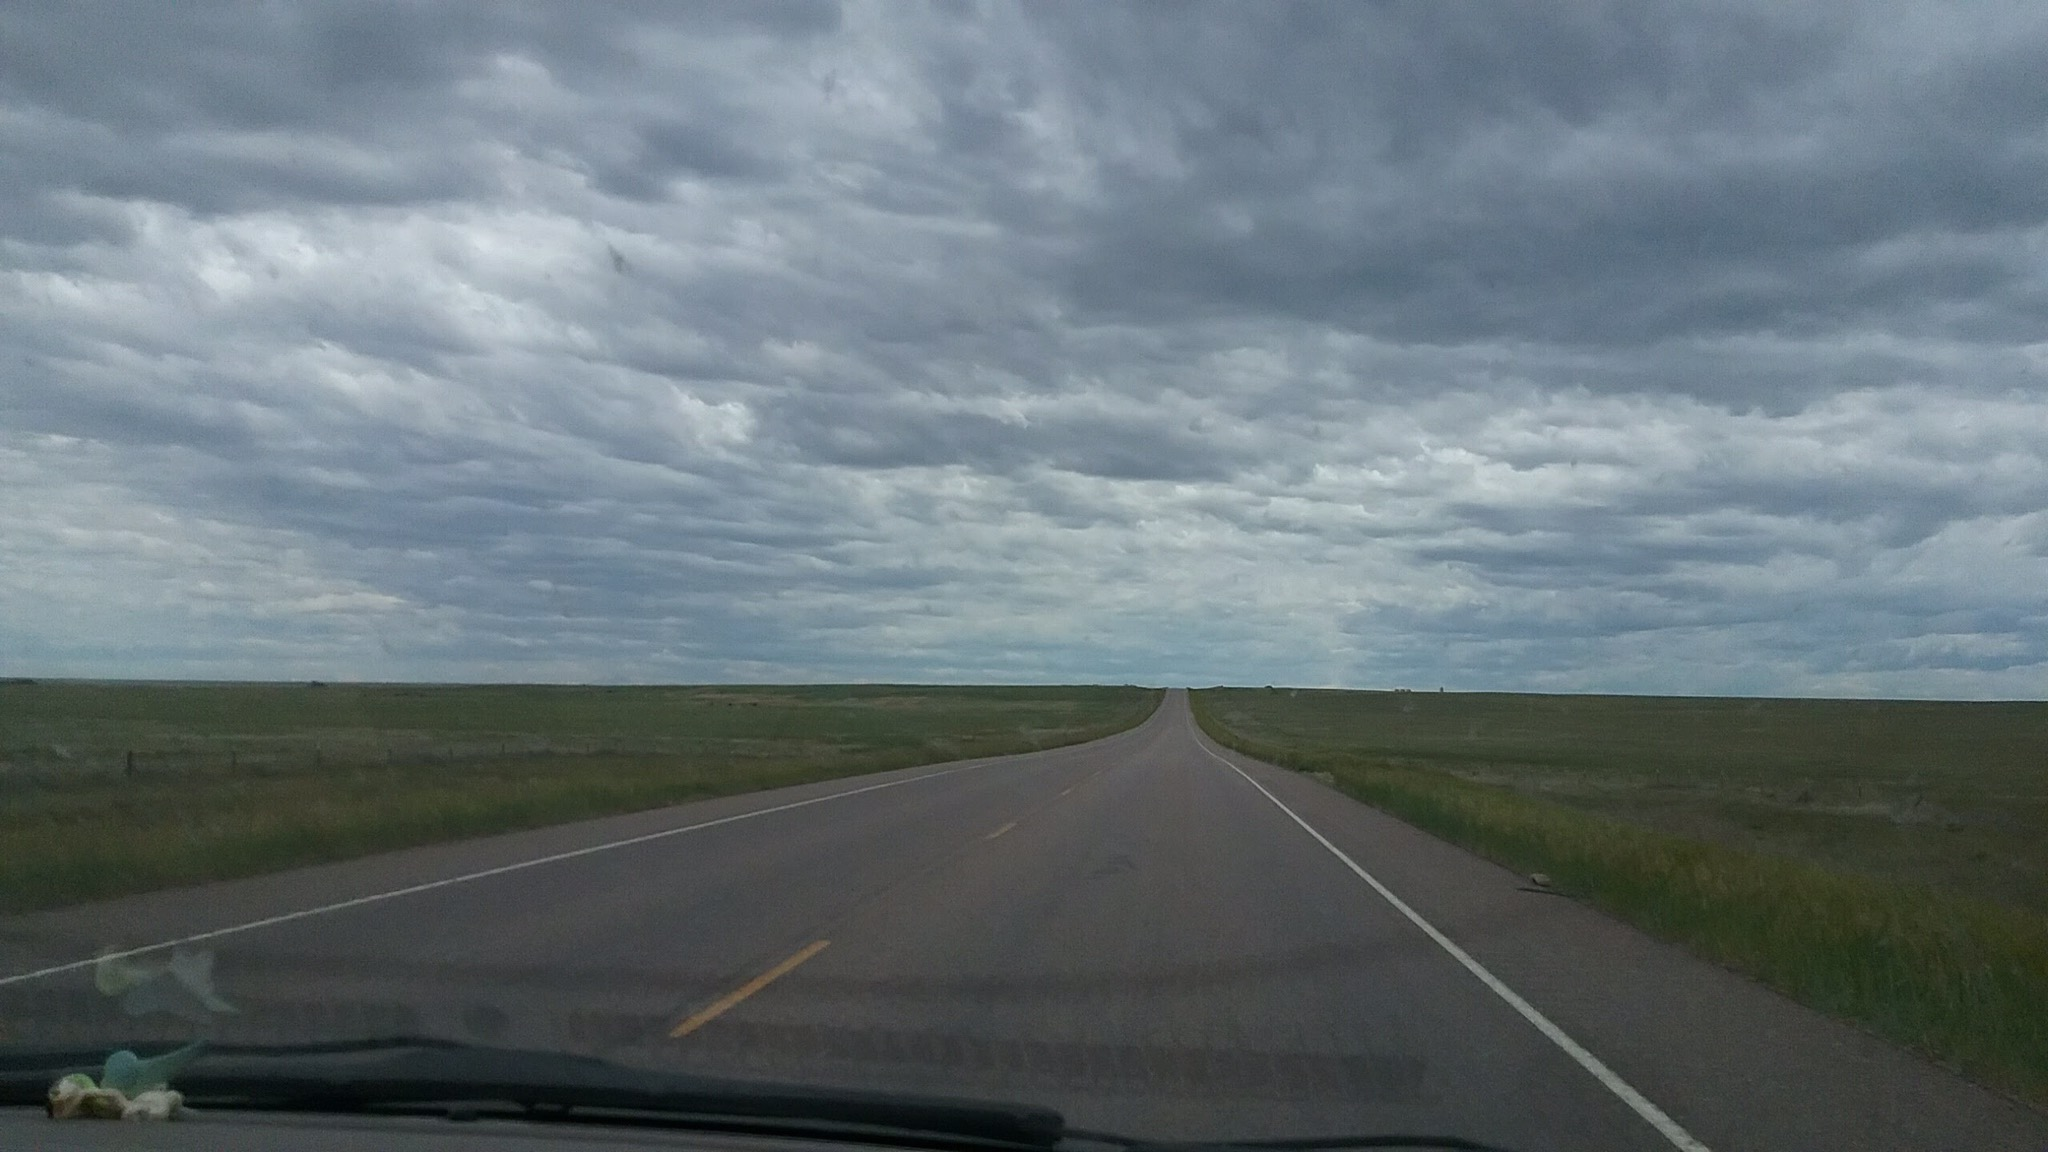 cloudy skies over flat land